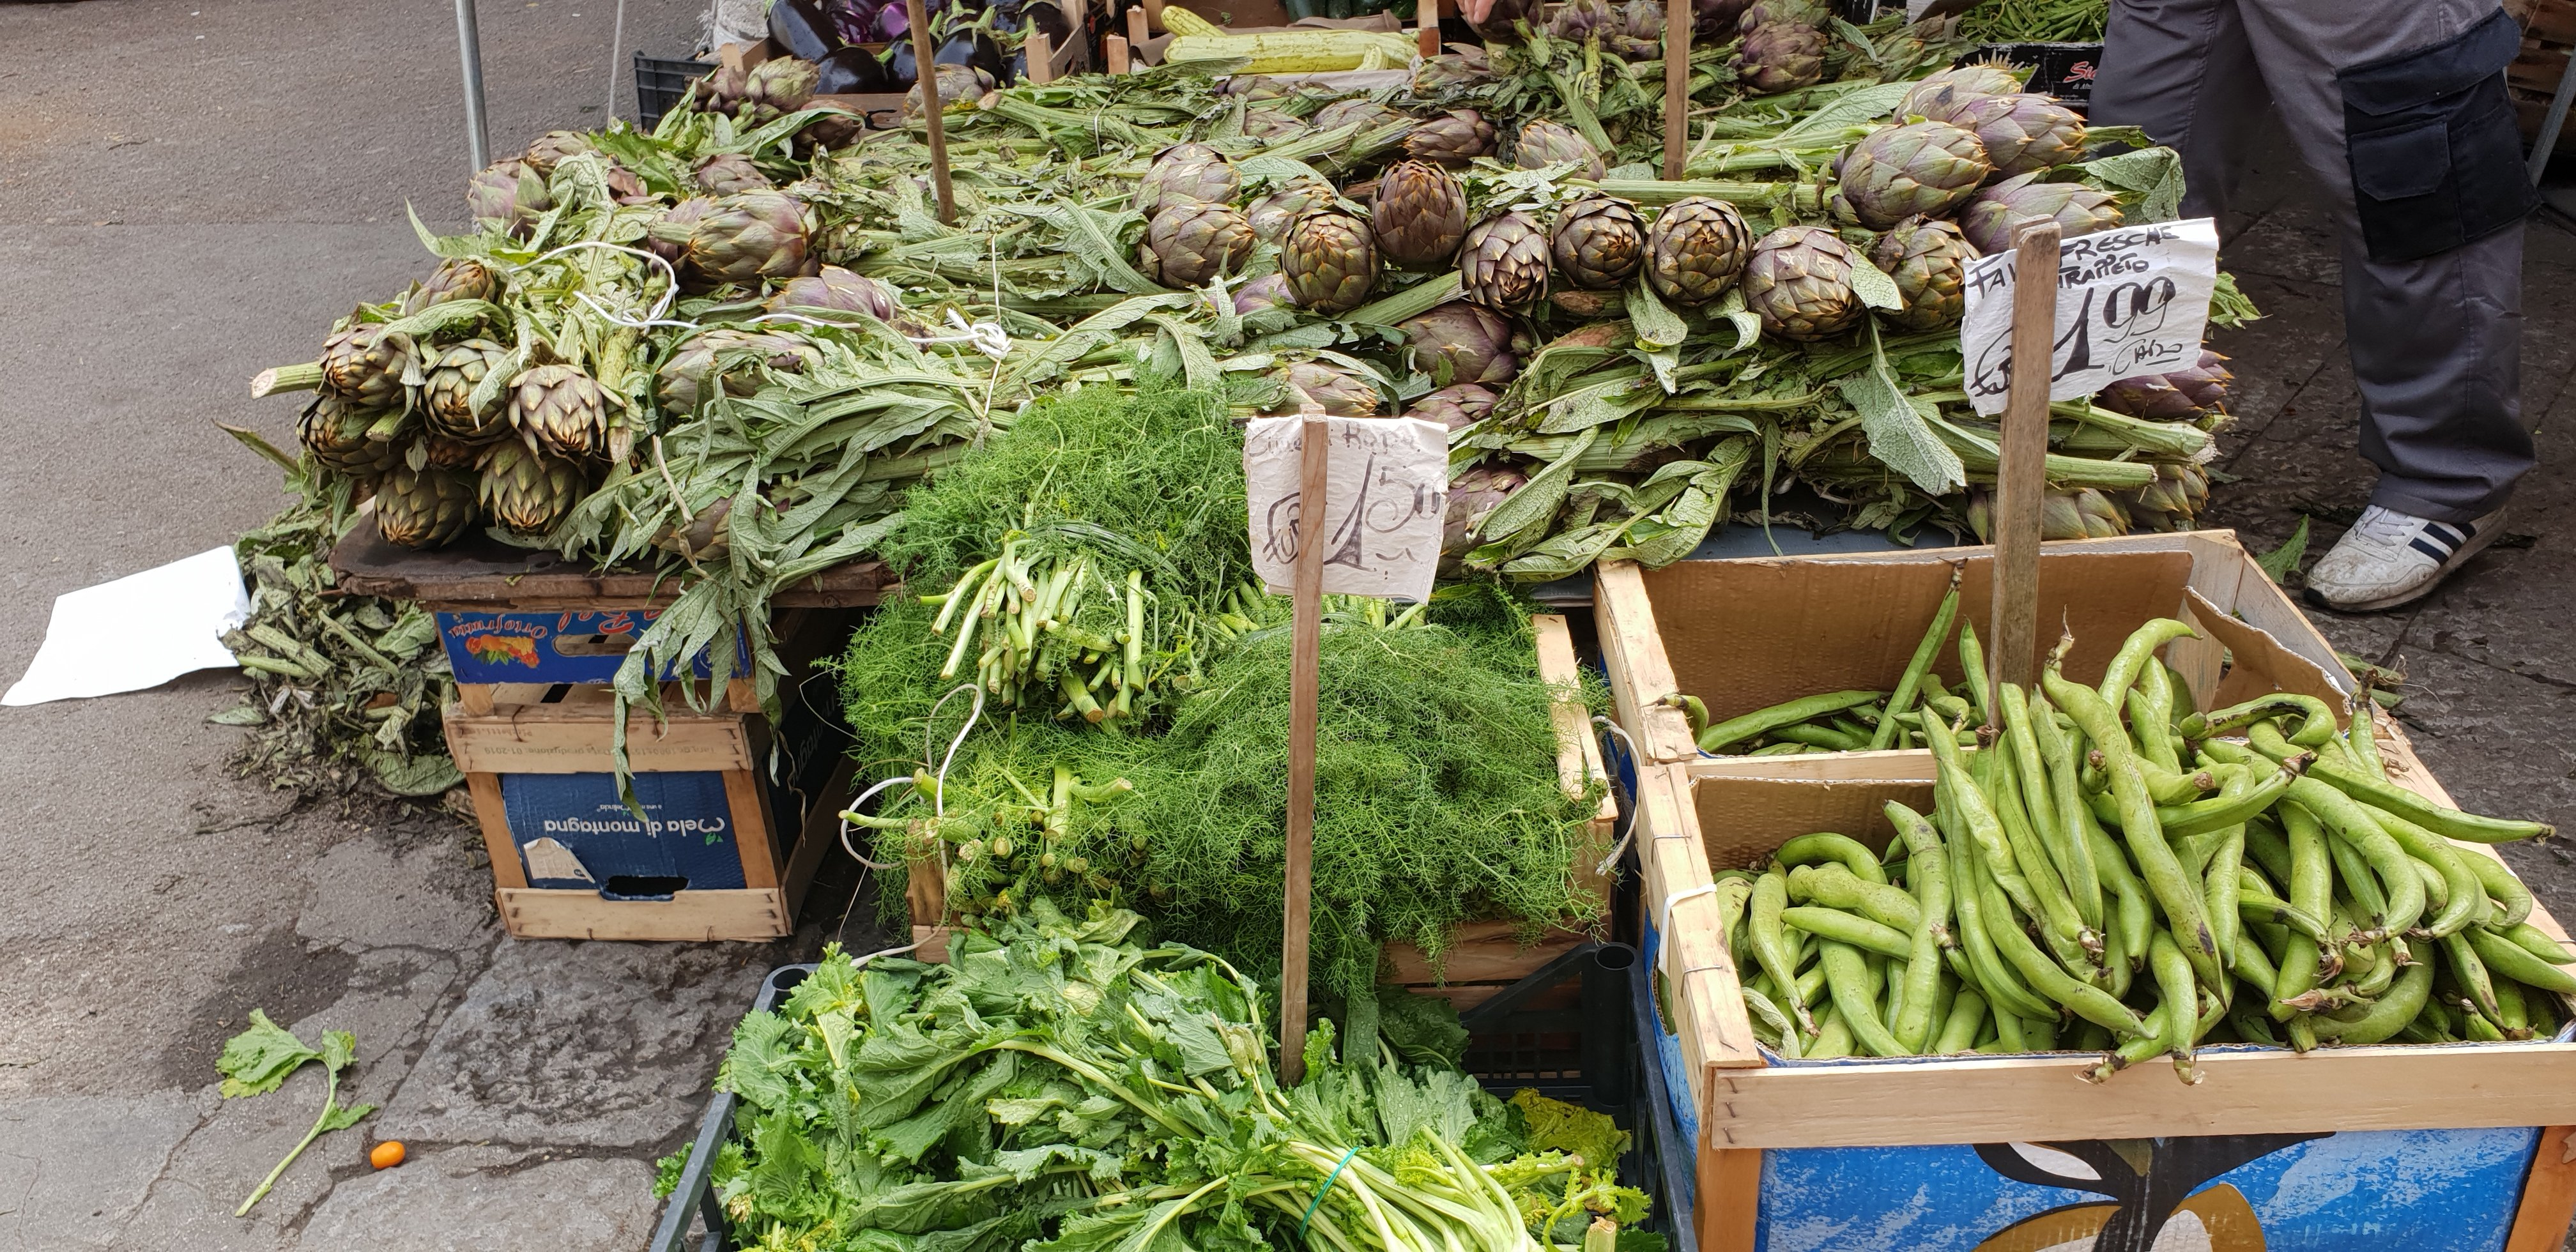 The new season's fresh vegetables, Capo Market, Palermo